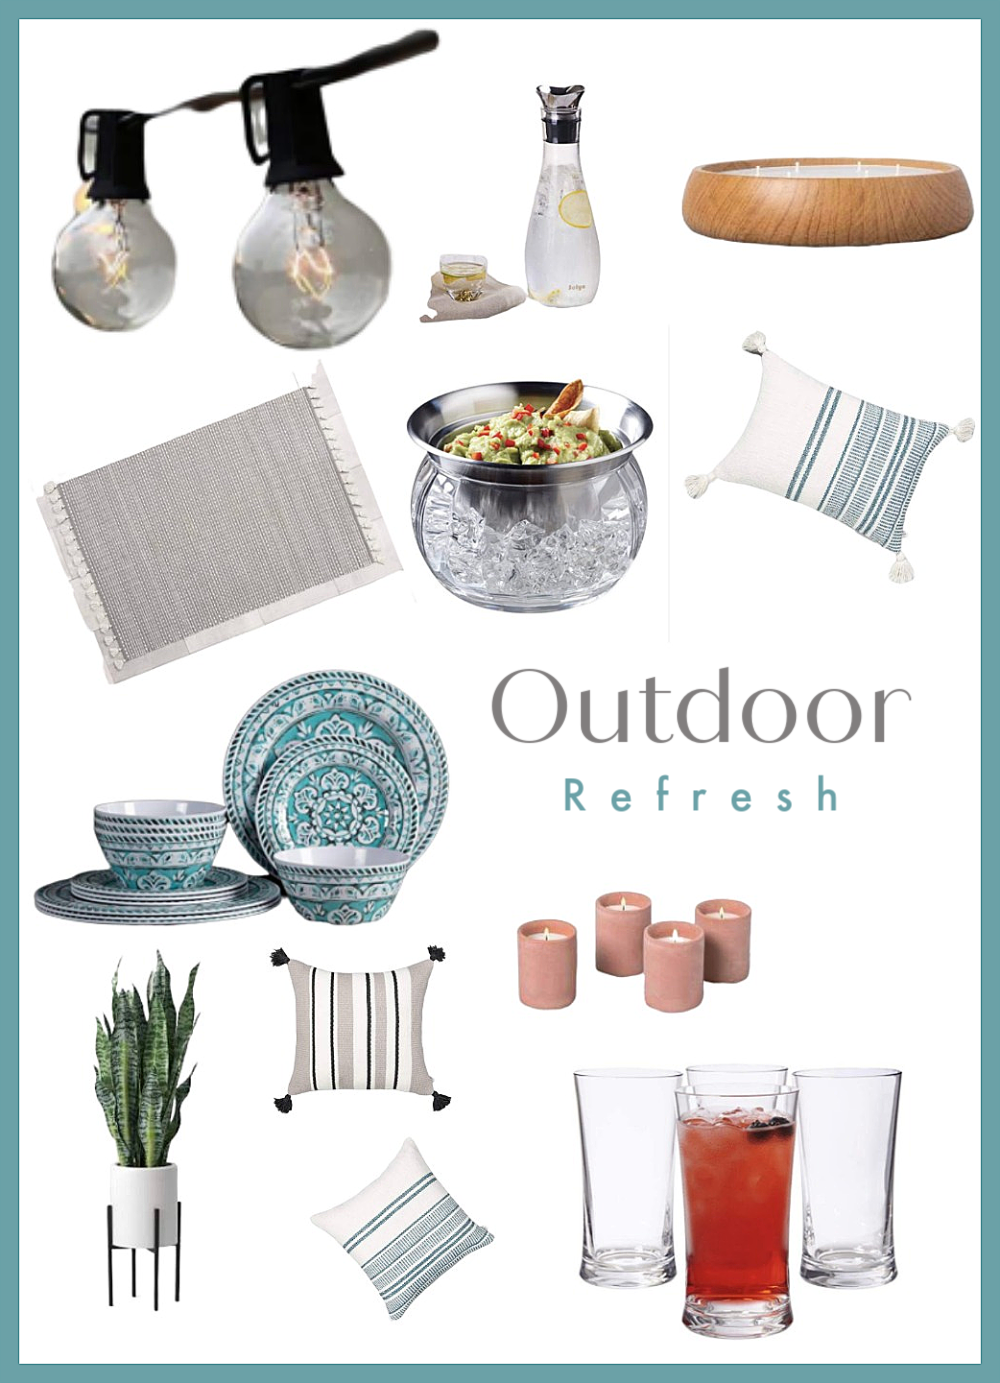 Outdoor Refresh